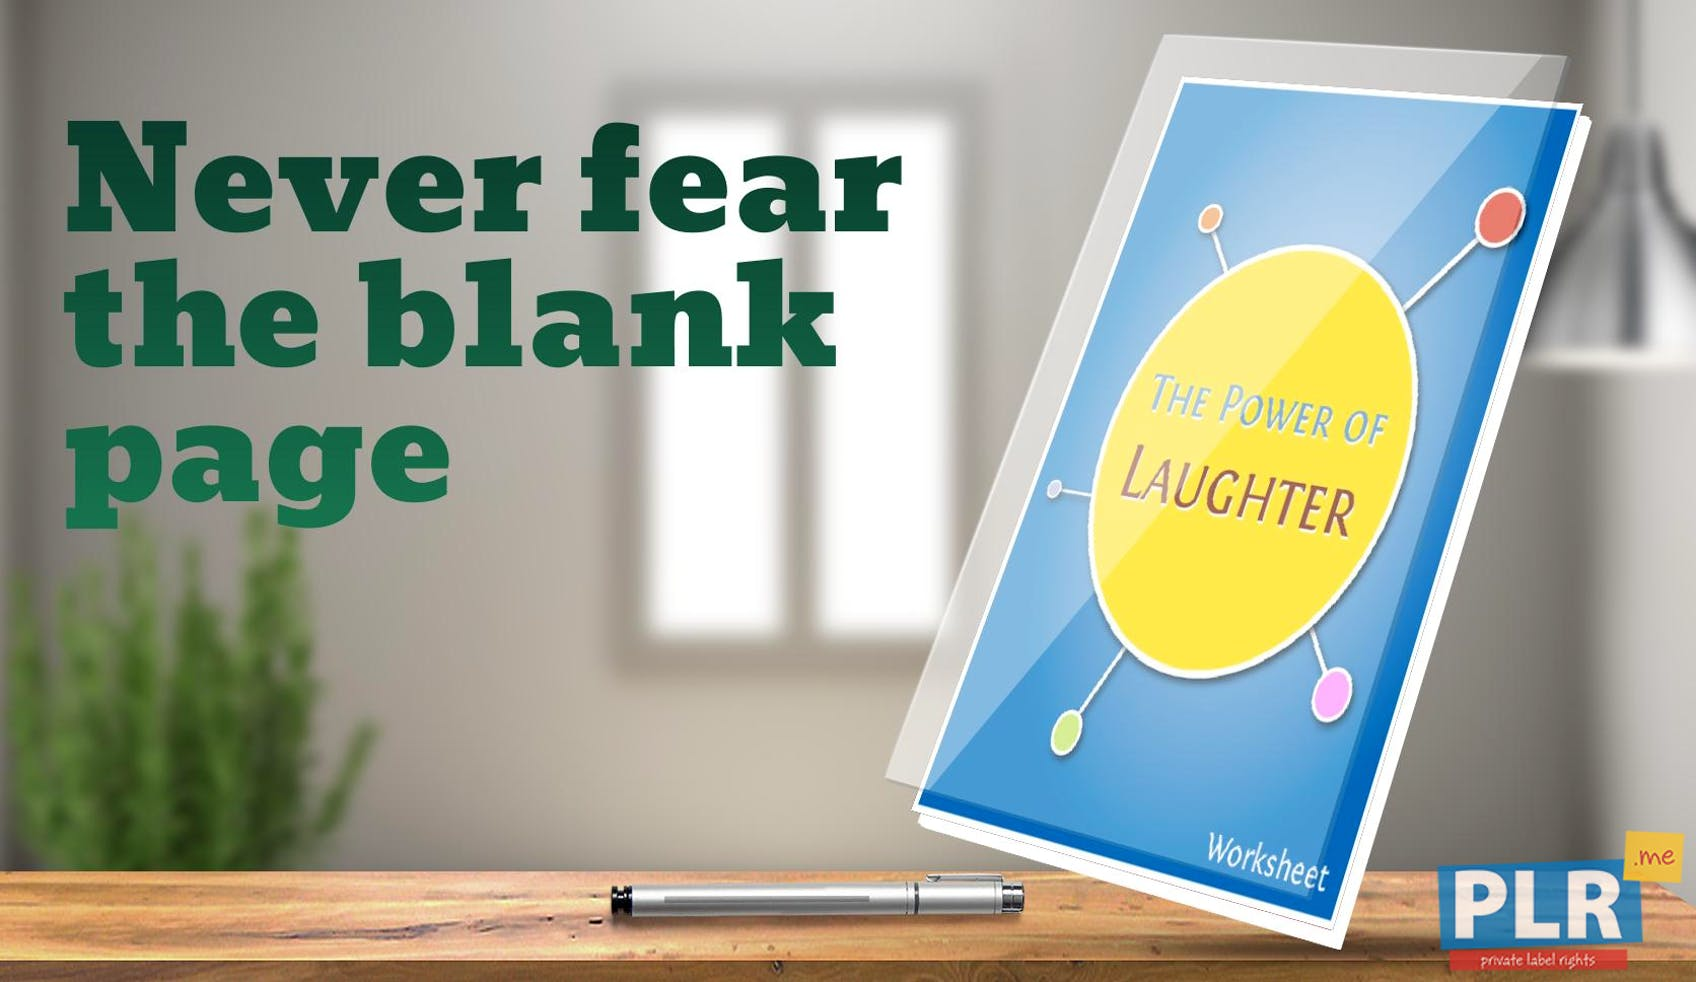 The Power Of Laughter Worksheet